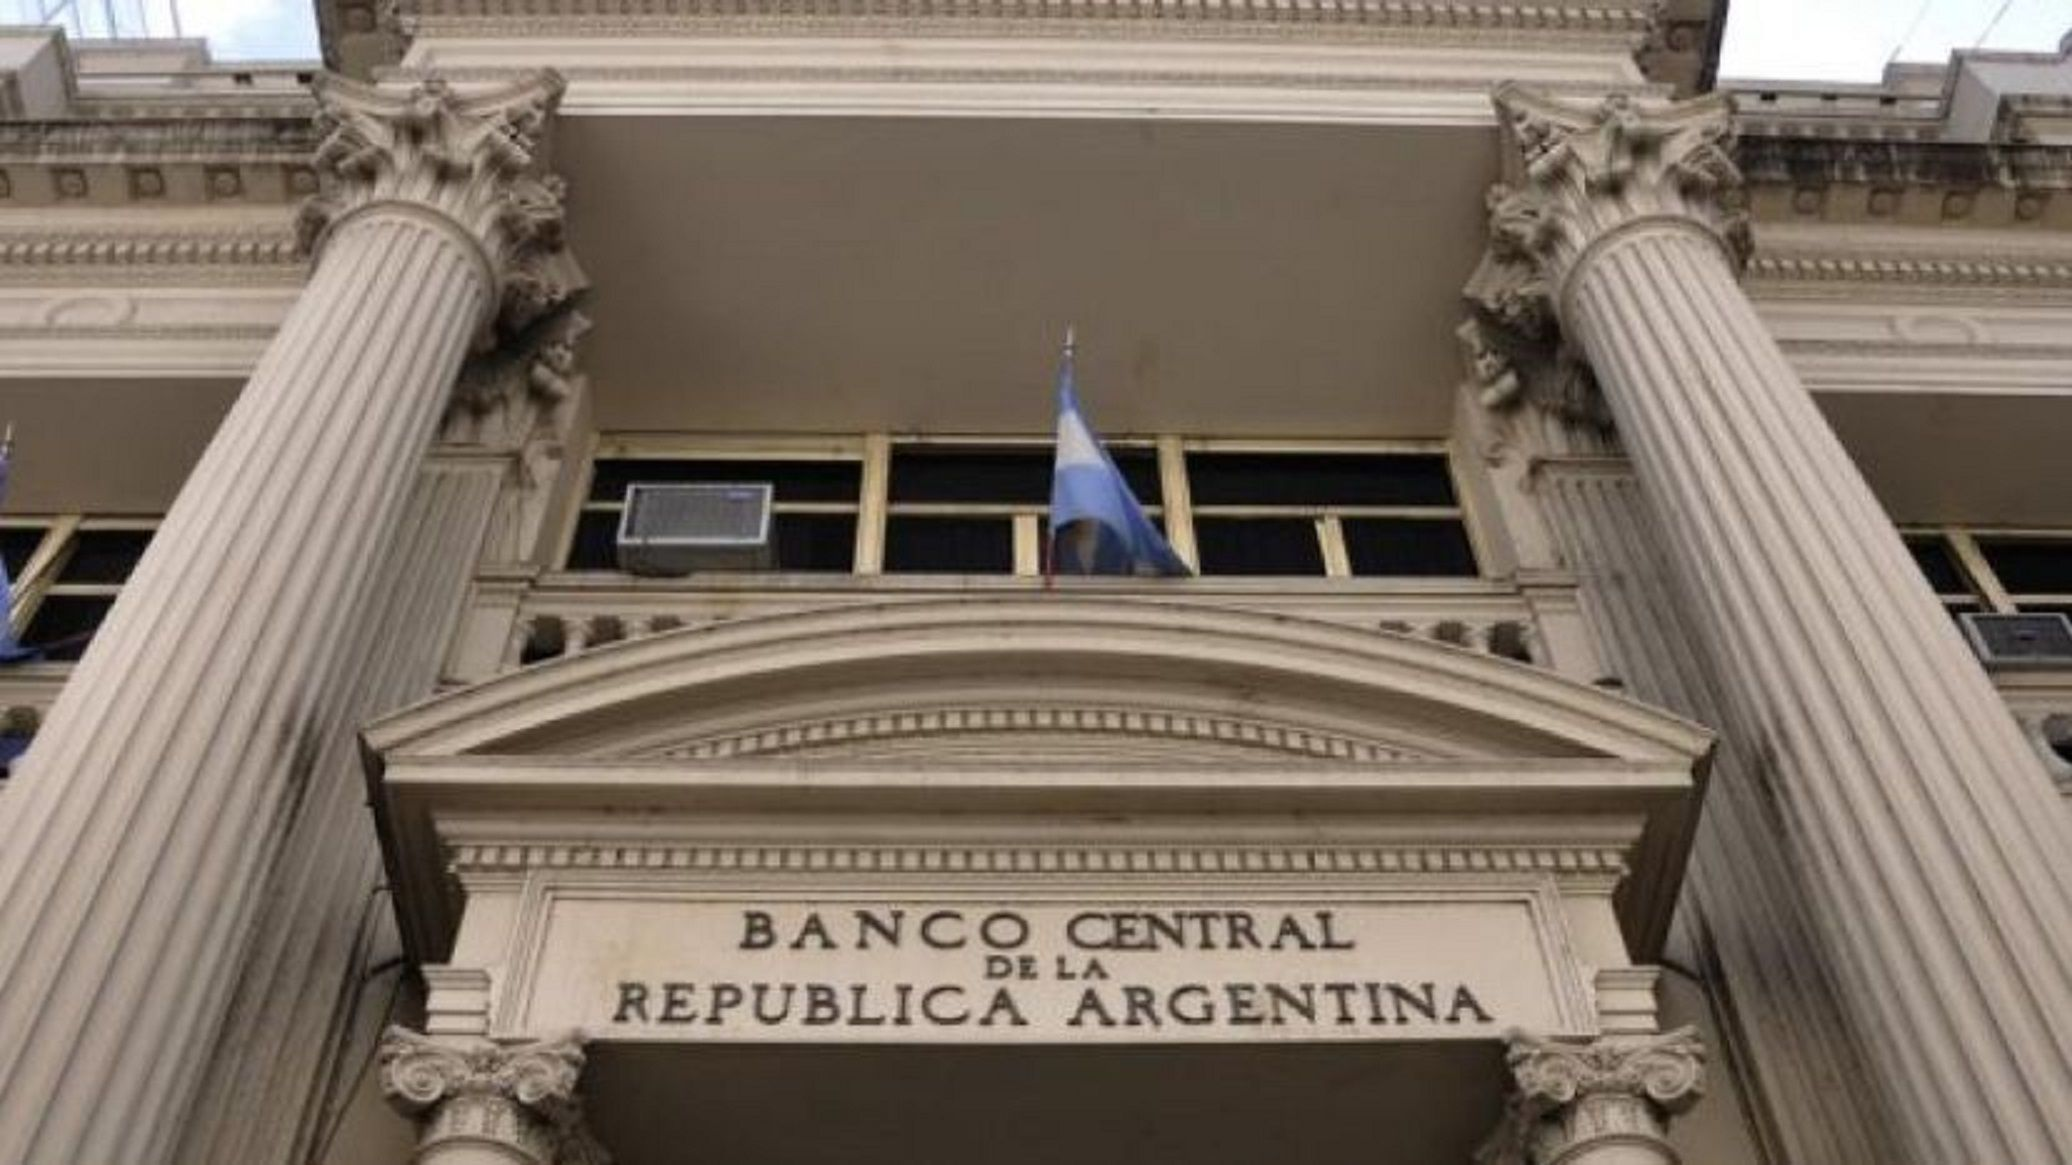 Para frenar la escalada del dólar, el Banco Central intervino con una tasa mayor al 71%